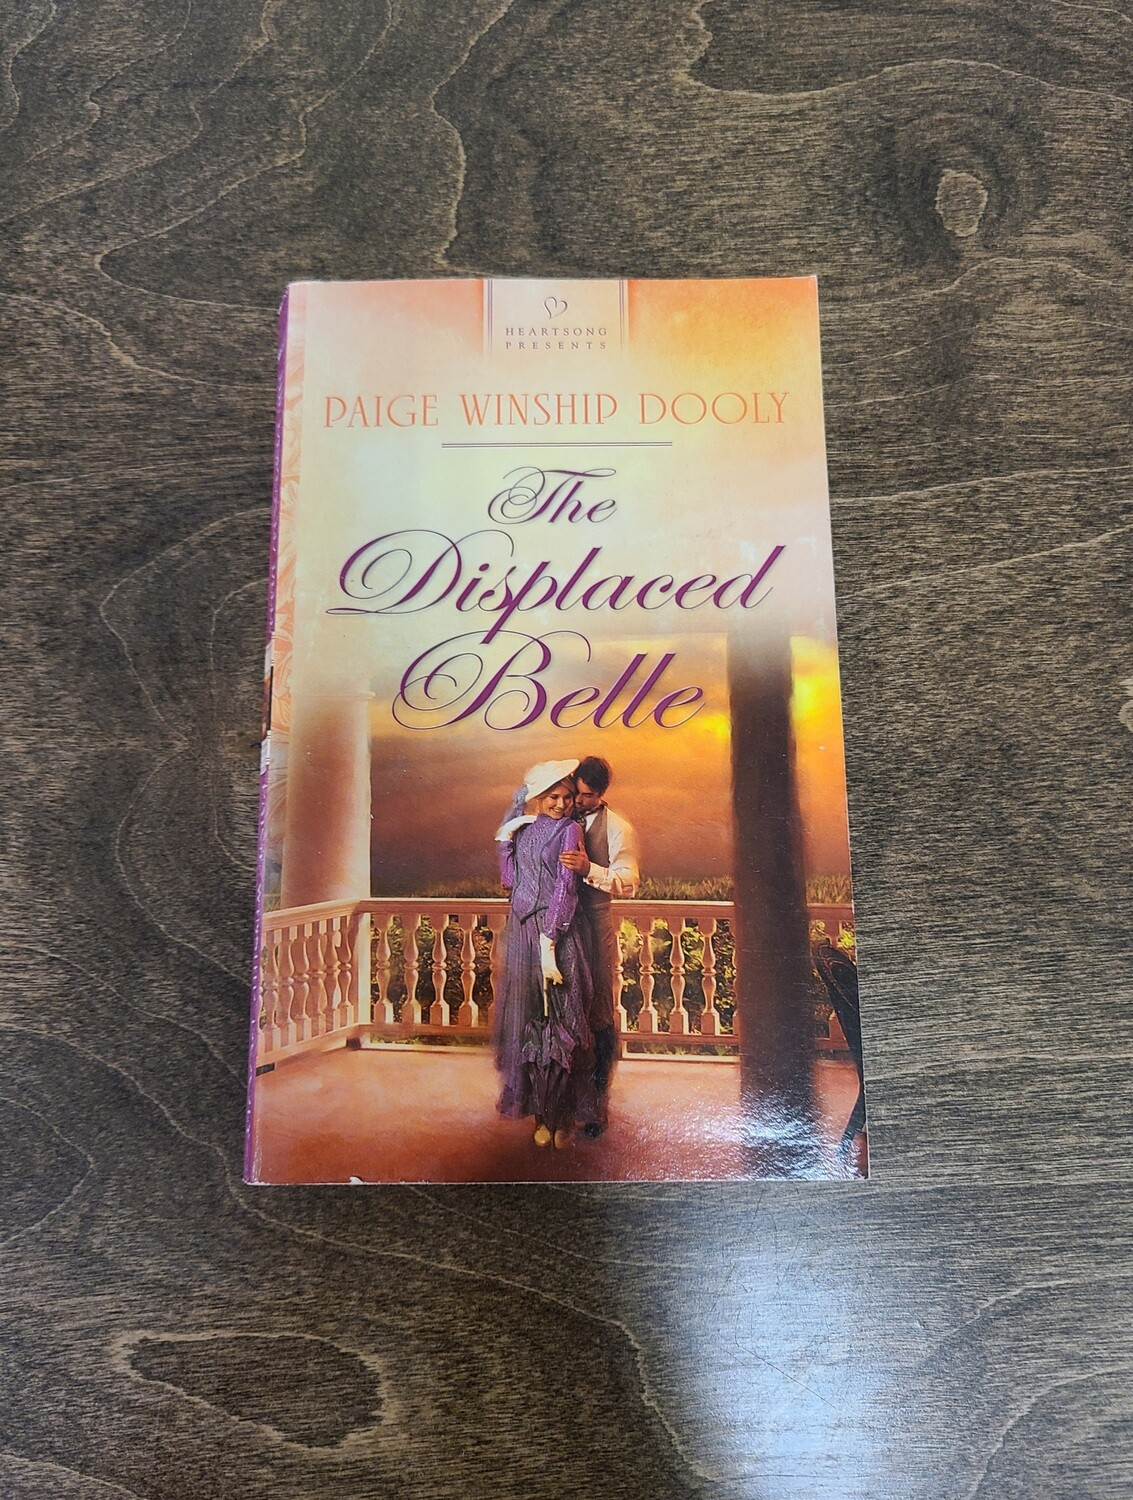 The Displaced Belle by Paige Winship Dooly